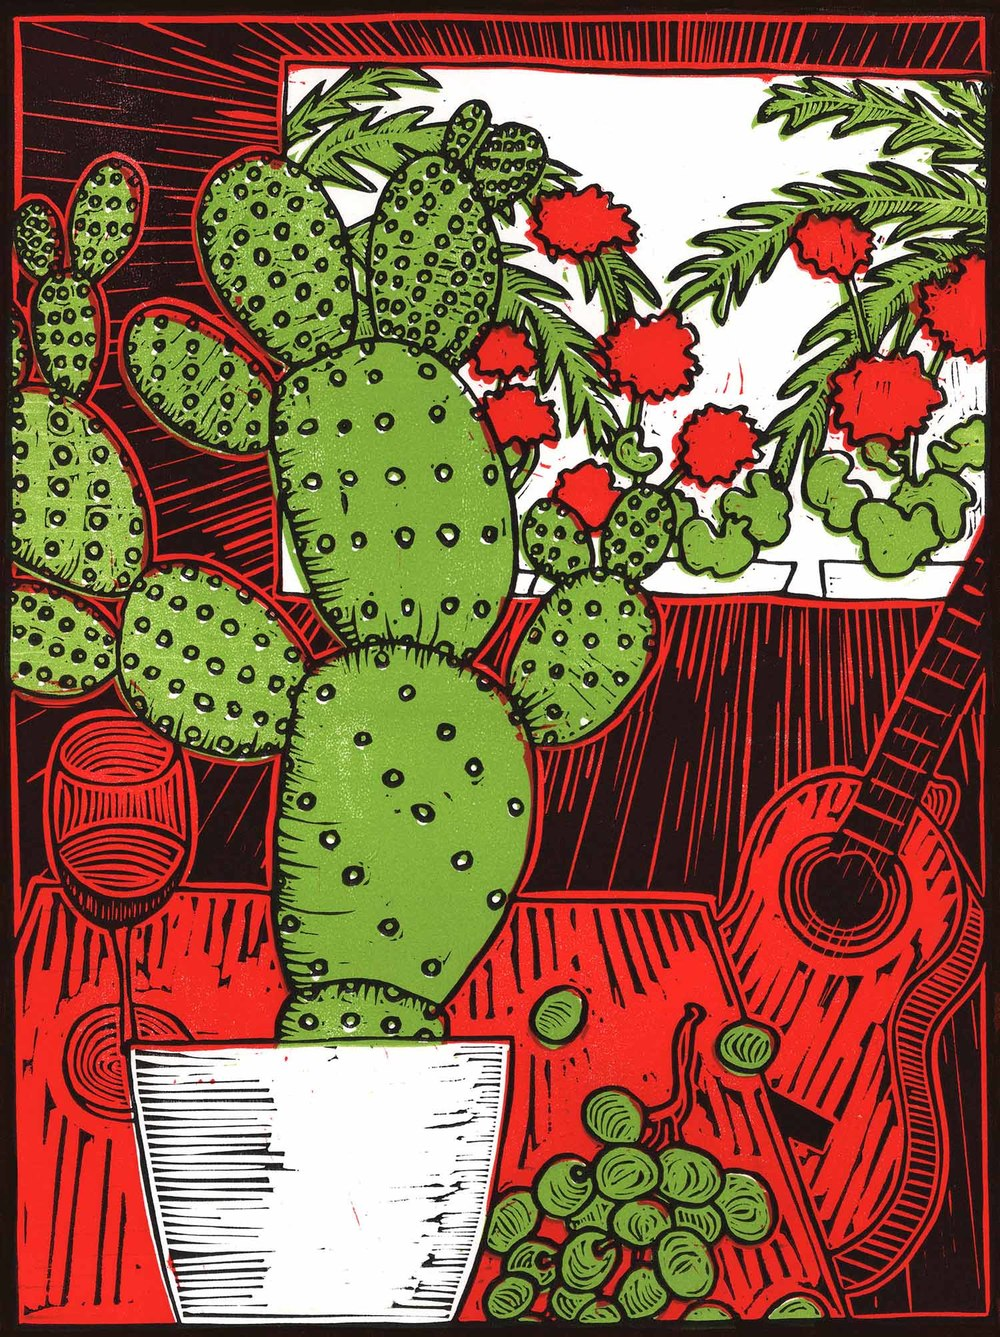 """Still Life With Cactus"" – original linocut print limited edition of 55, 30 x 40 cm."